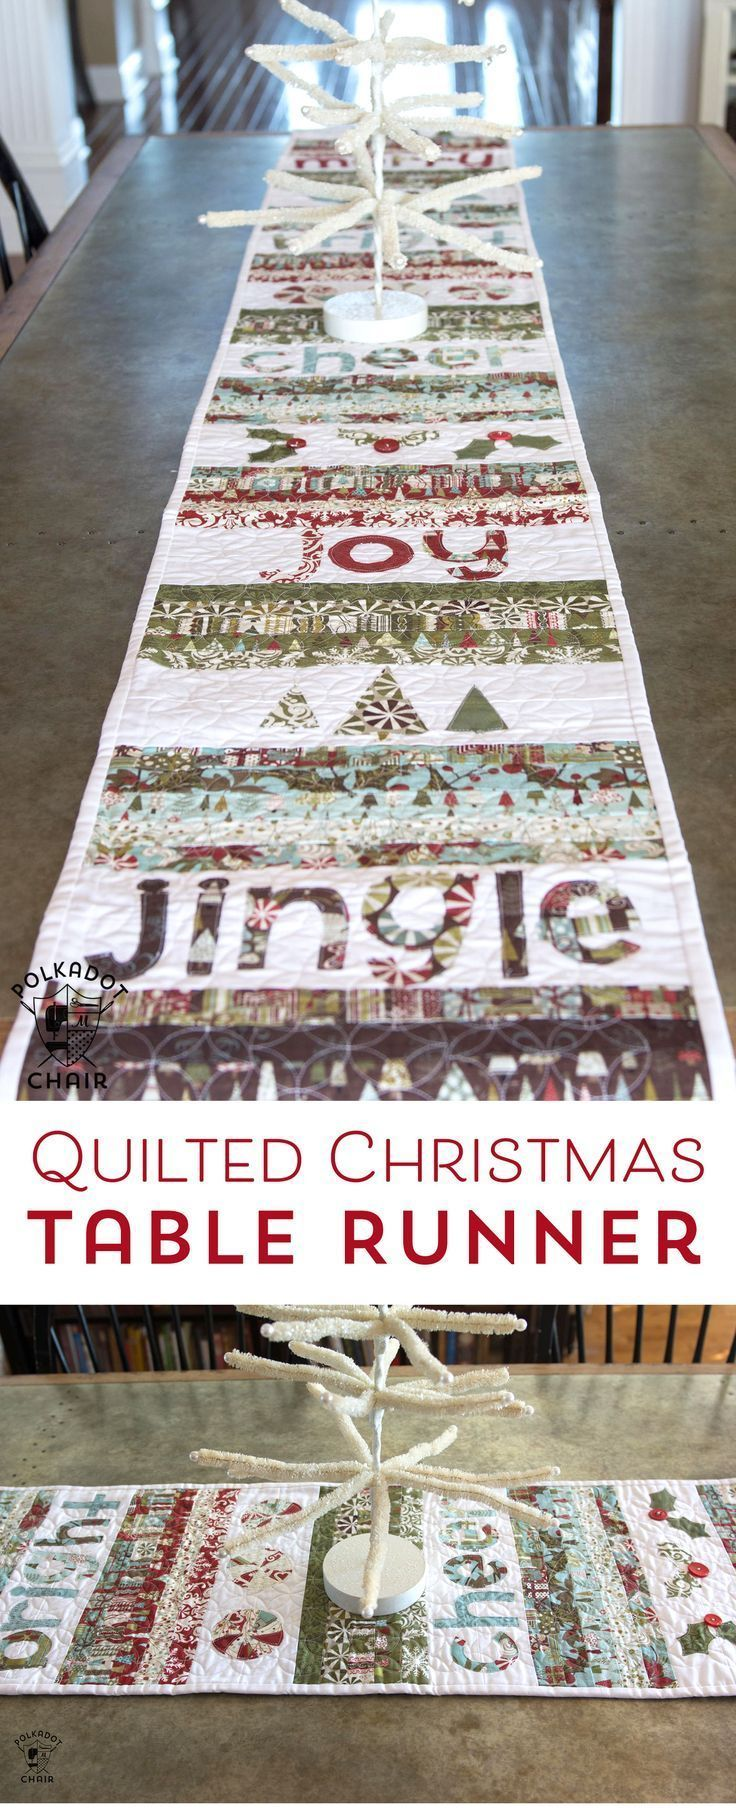 Merry Cheer Quilted Christmas Table Runner Pattern Christmas Table Runner Pattern Christmas Table Runner Christmas Runner